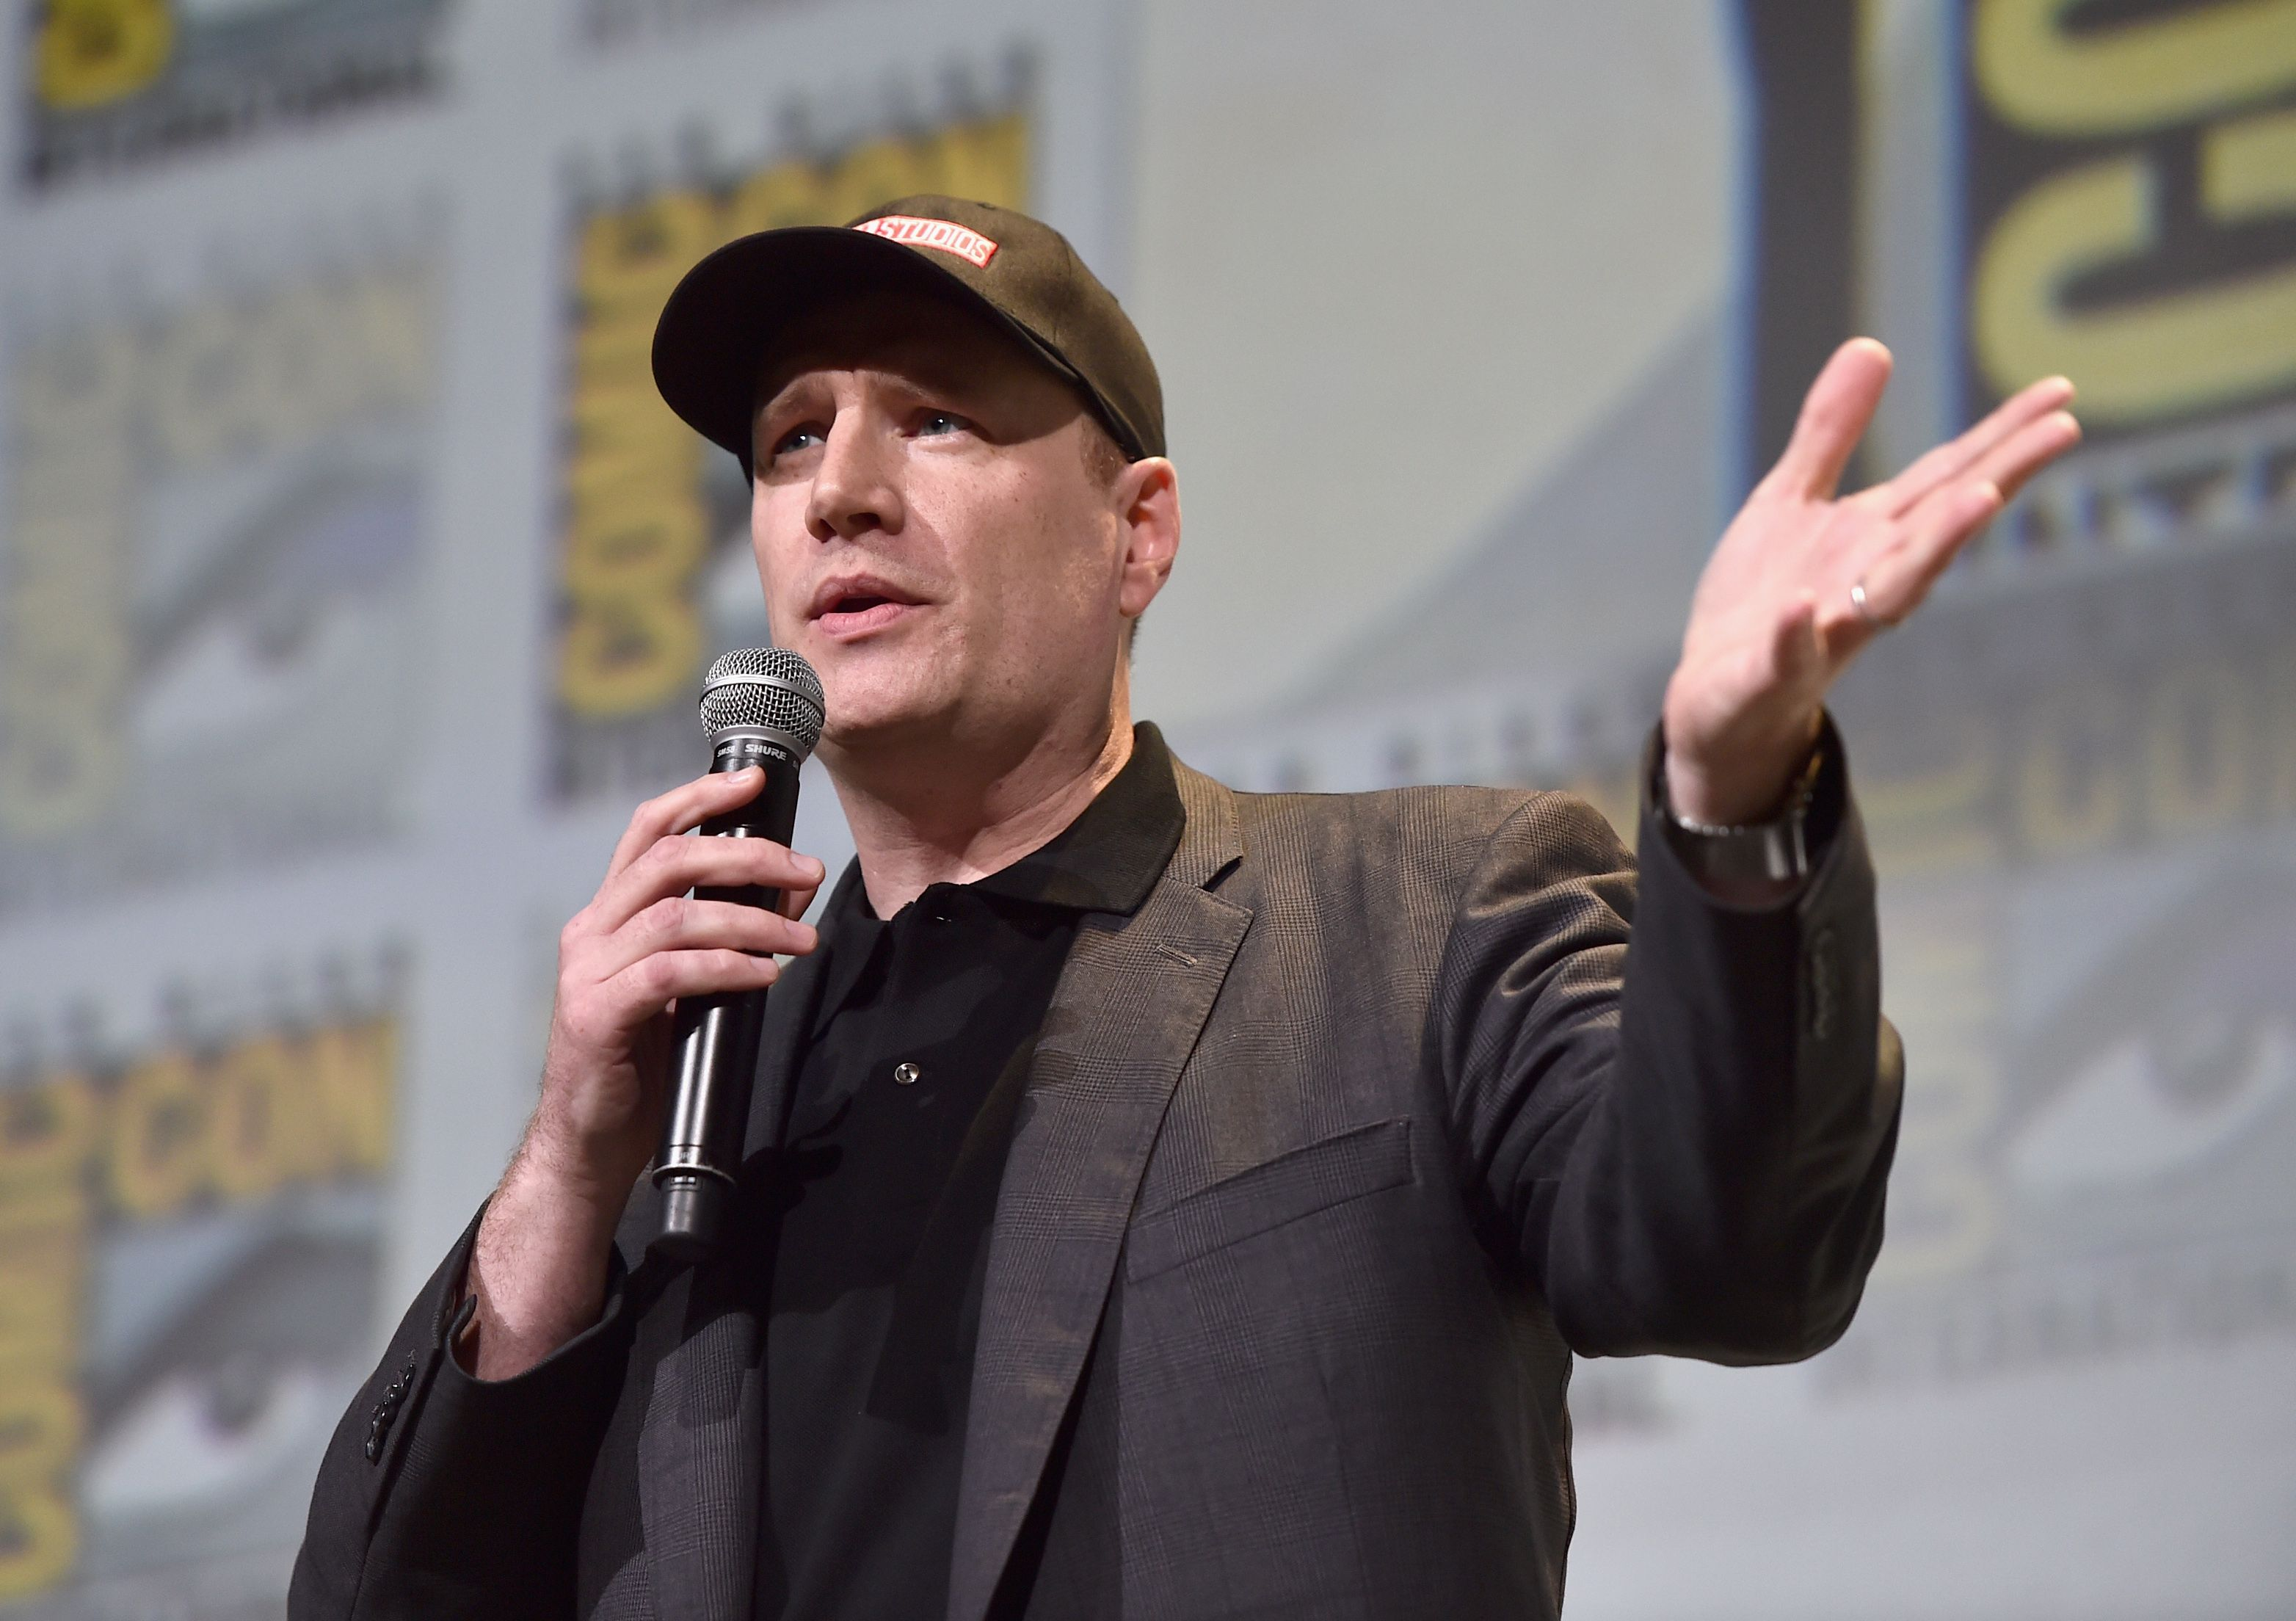 'Black Panther' Director Will Do Sequel When He's Ready, Says Marvel